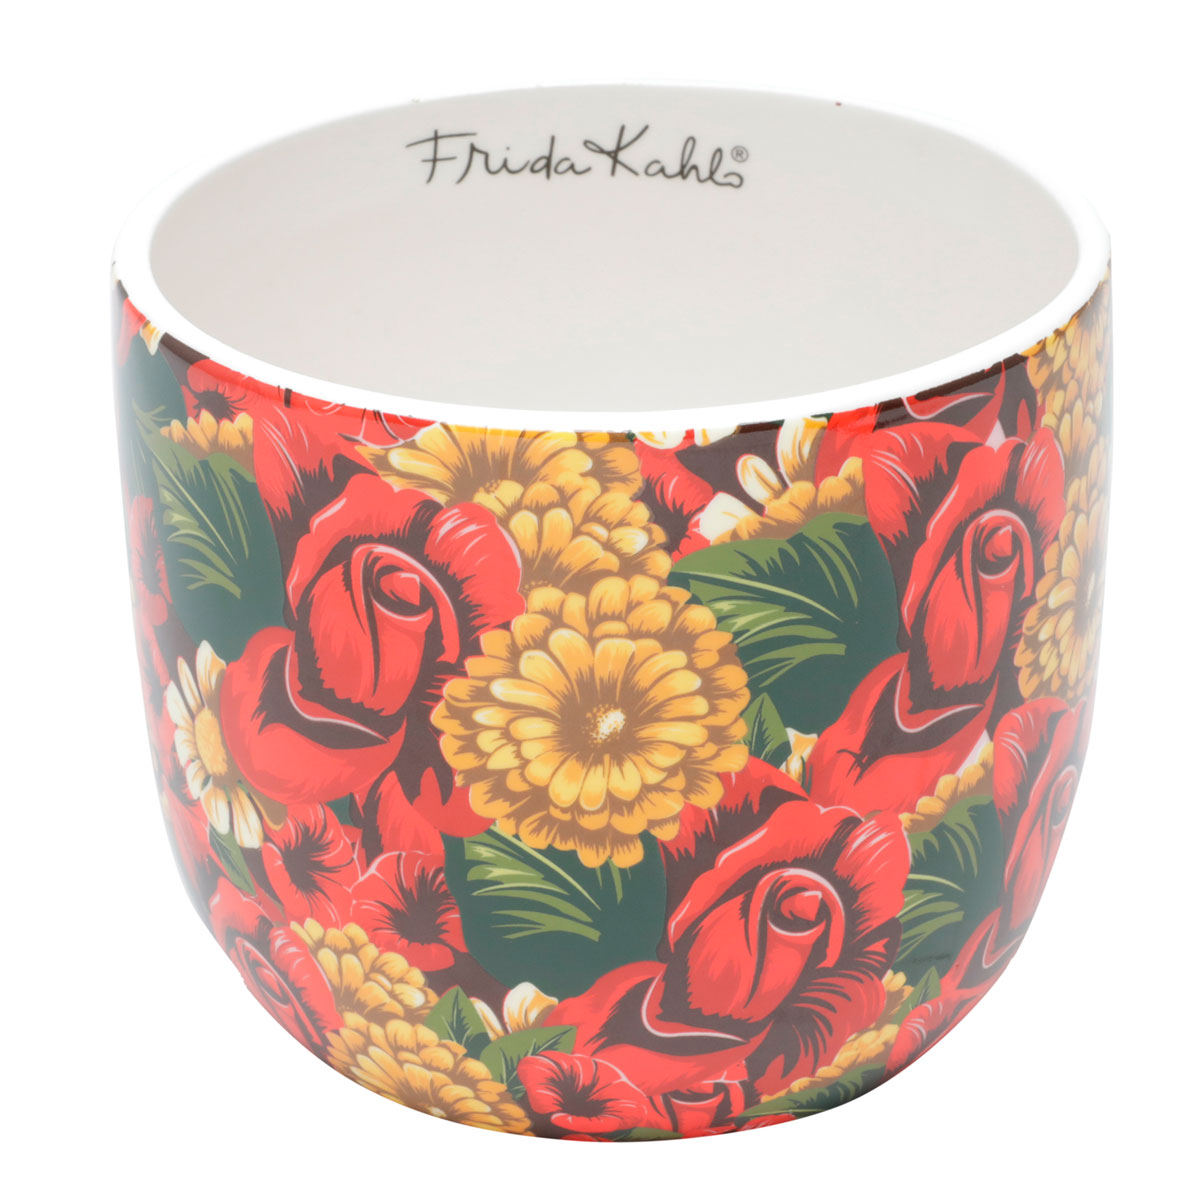 Cachepot Vaso Decorativo de Cerâmica Frida Kahlo Yellow Flower - Presente Super